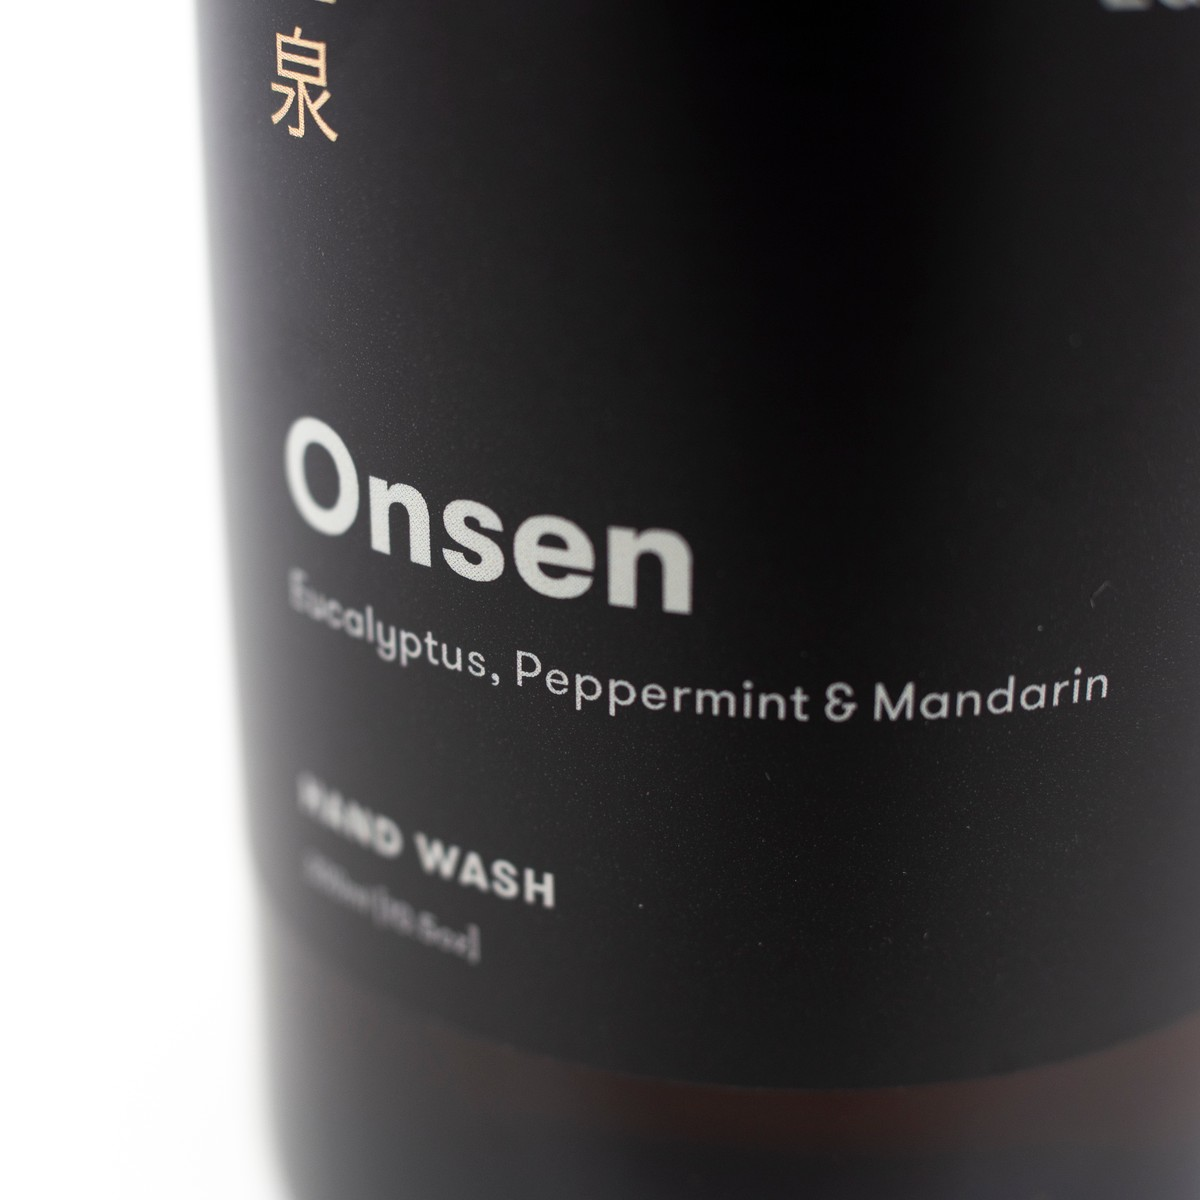 Photo of Onsen Candle